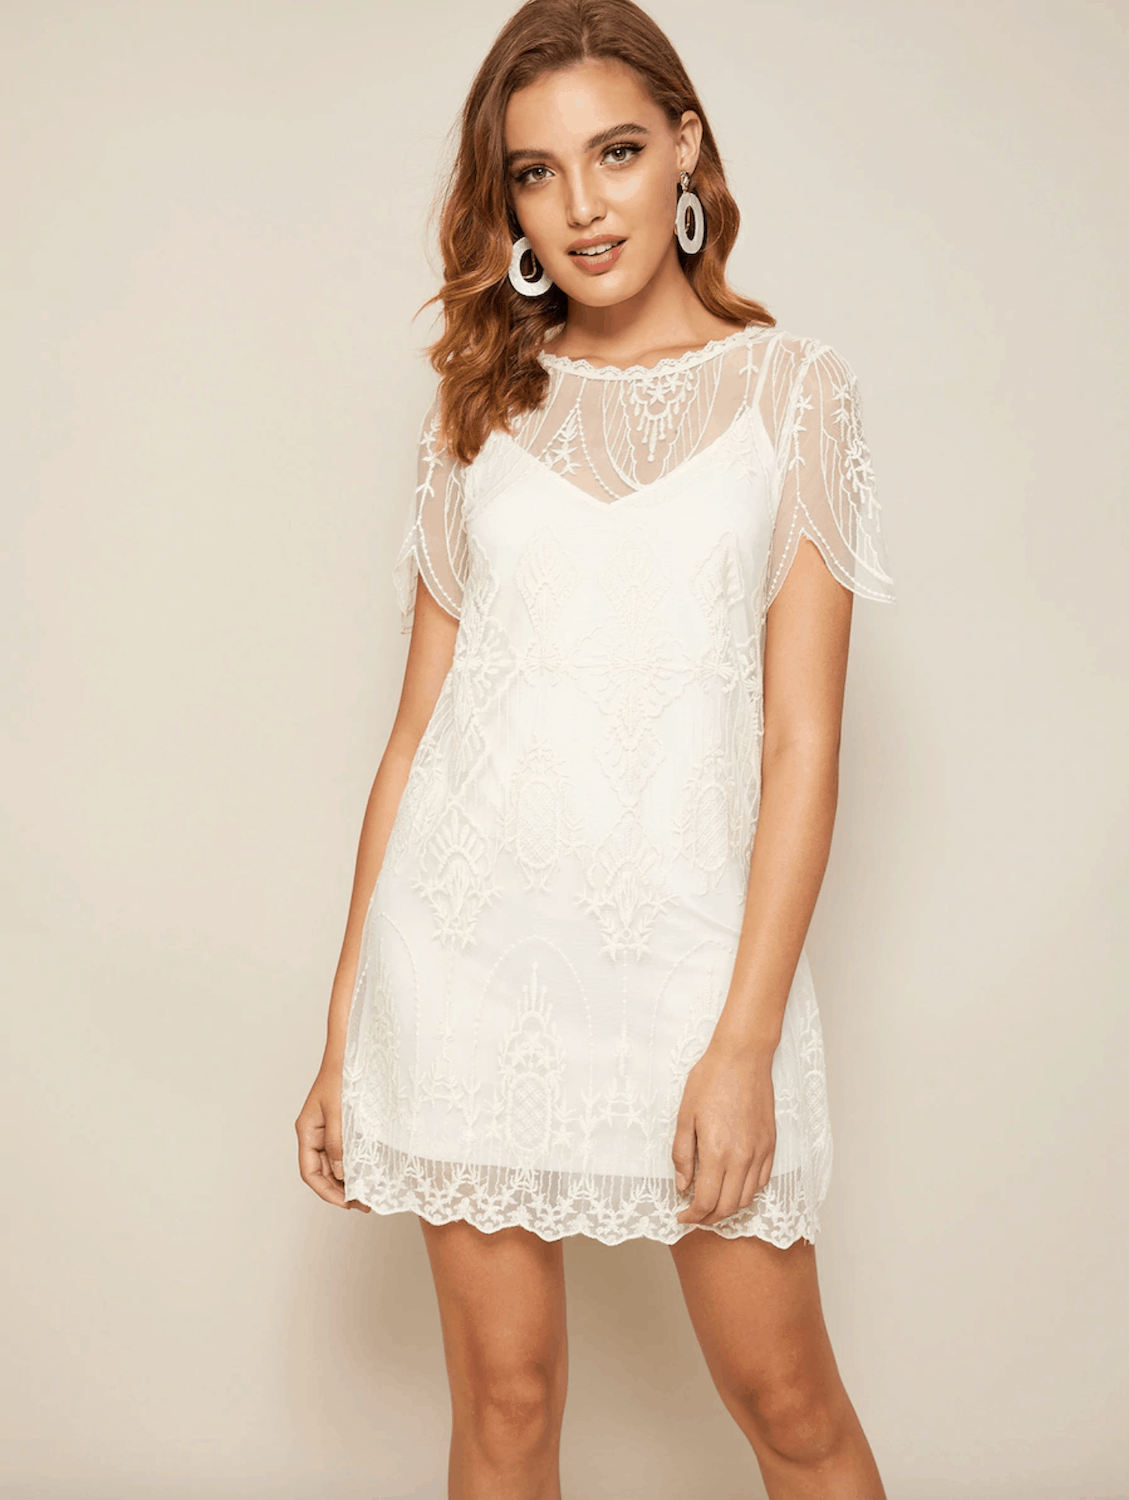 Prettiest City Hall Wedding Dresses and Courthouse Bridal Outfits Solid Cami Dress Embroidery Lace Dress